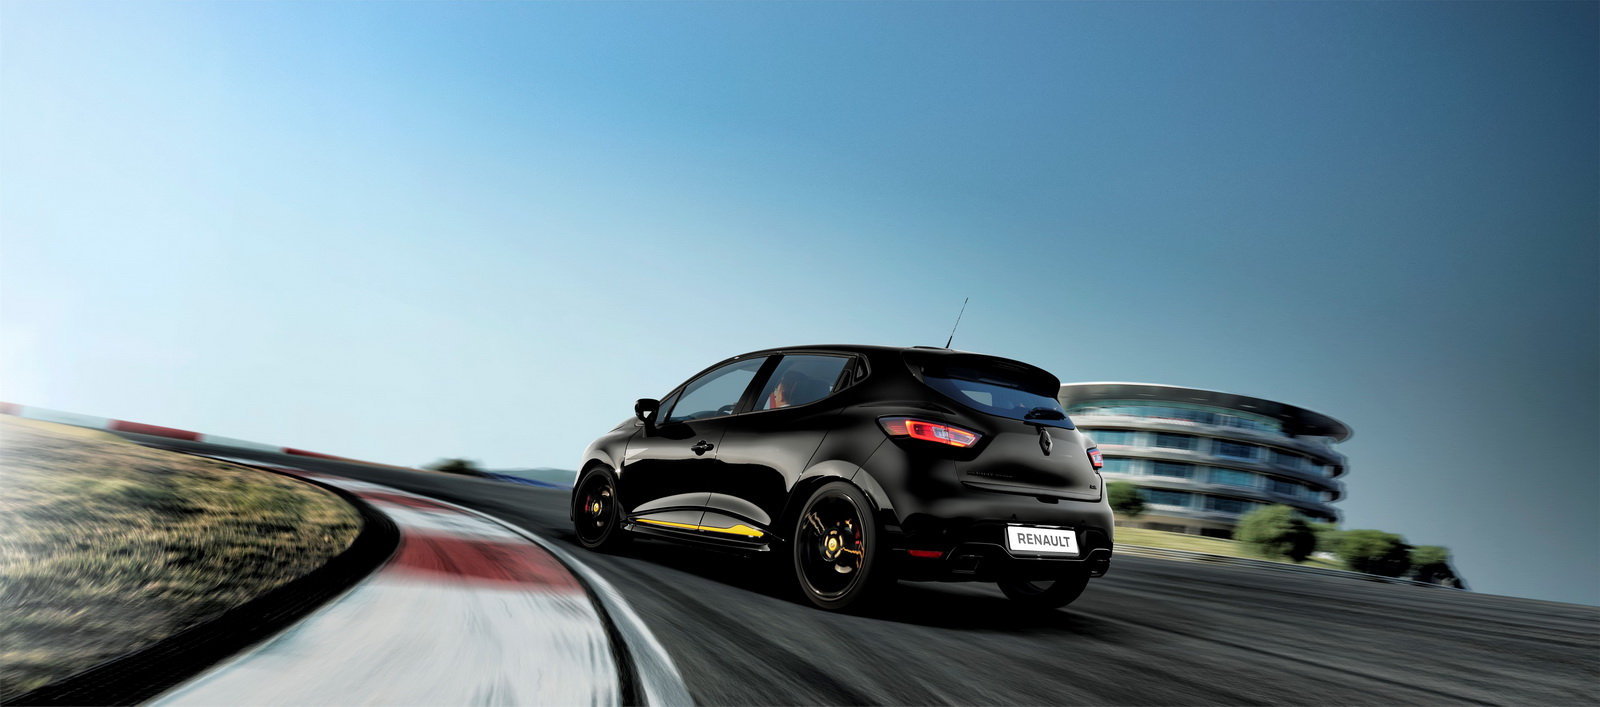 2018-renault-clio-rs-18-limited-edition-1.jpg